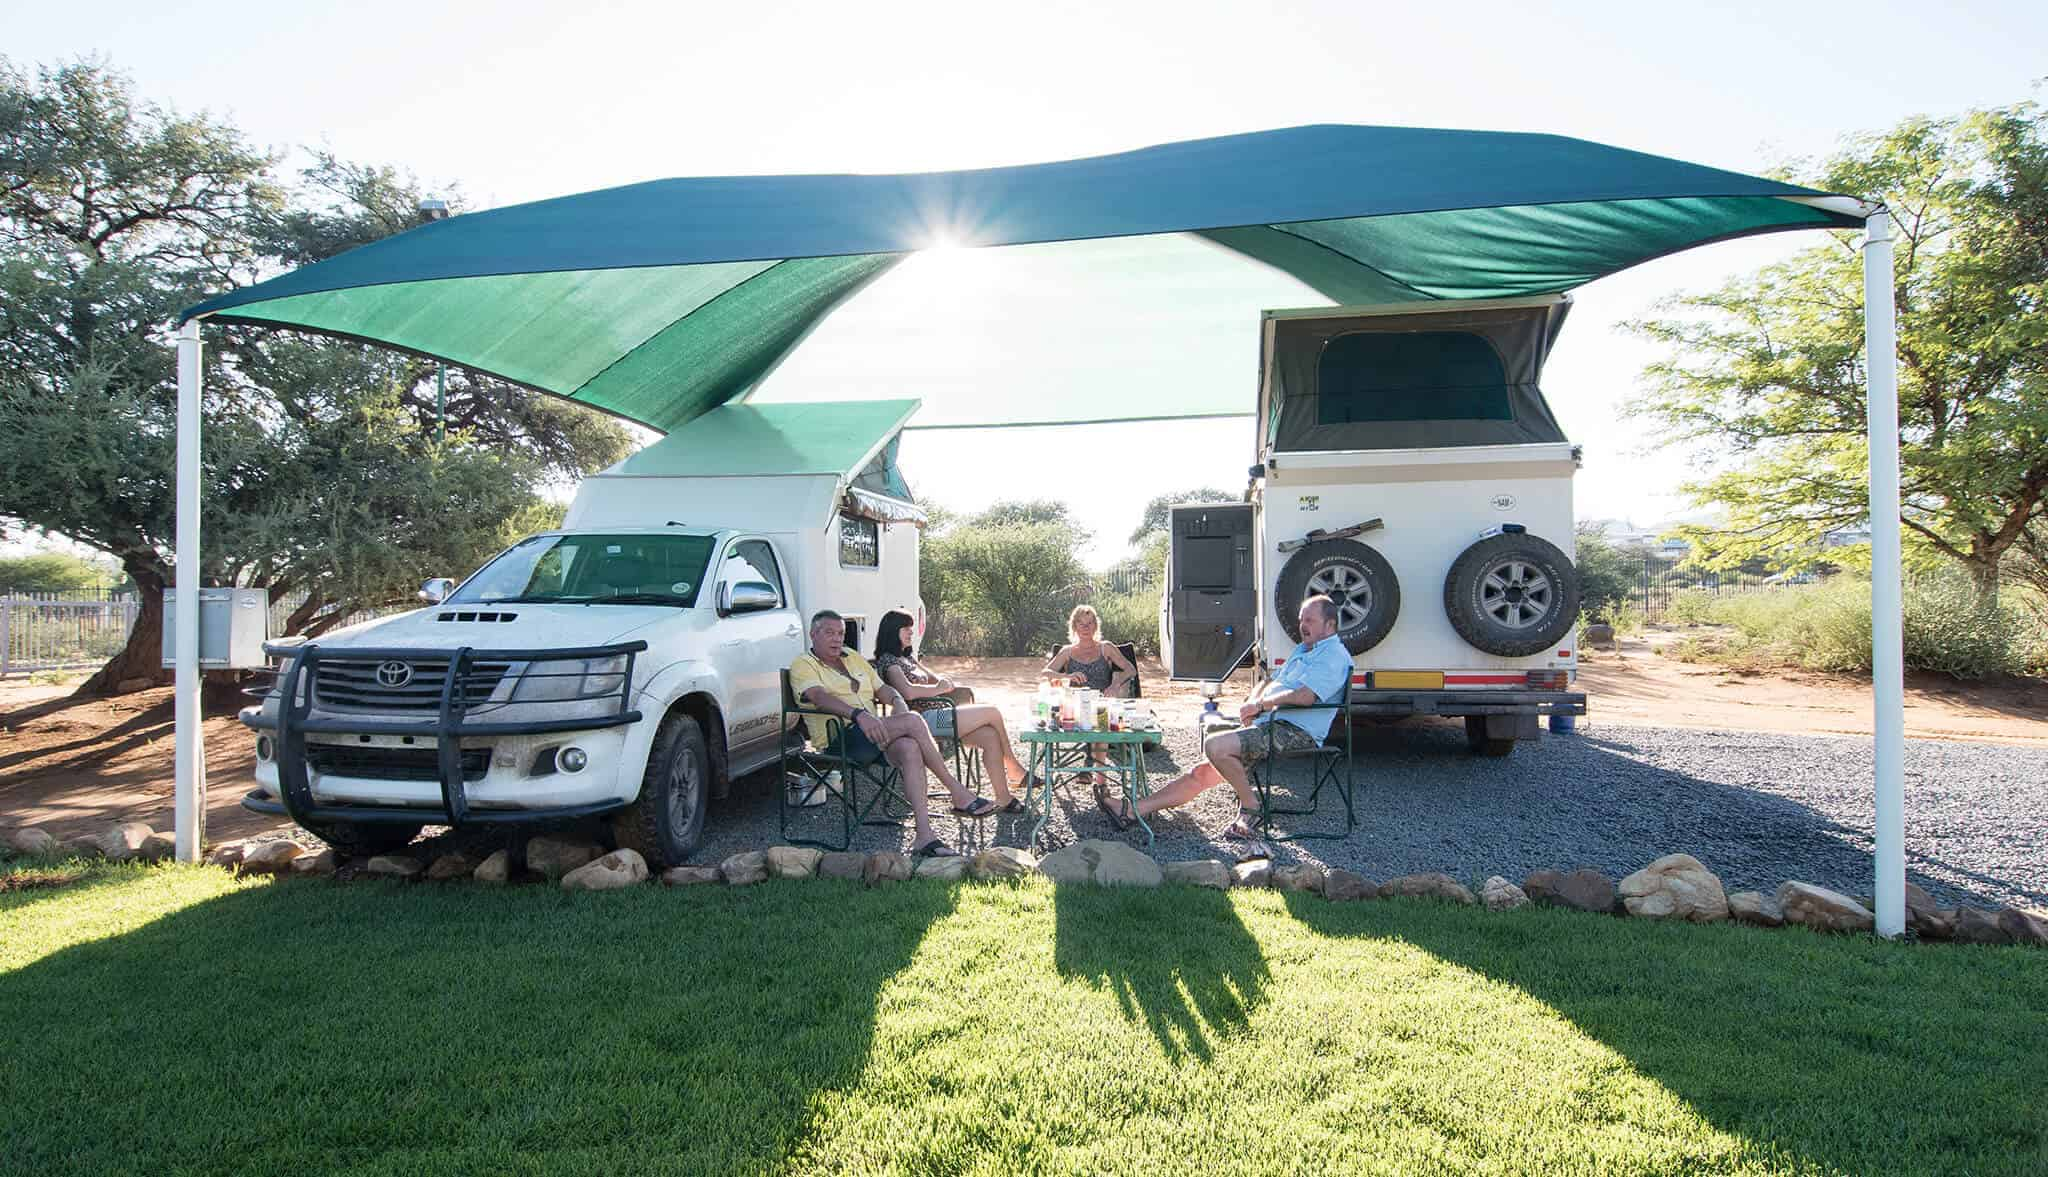 Standard camping & caravanning sites | Camping & caravanning sites in Windhoek | Arebbusch Travel Lodge